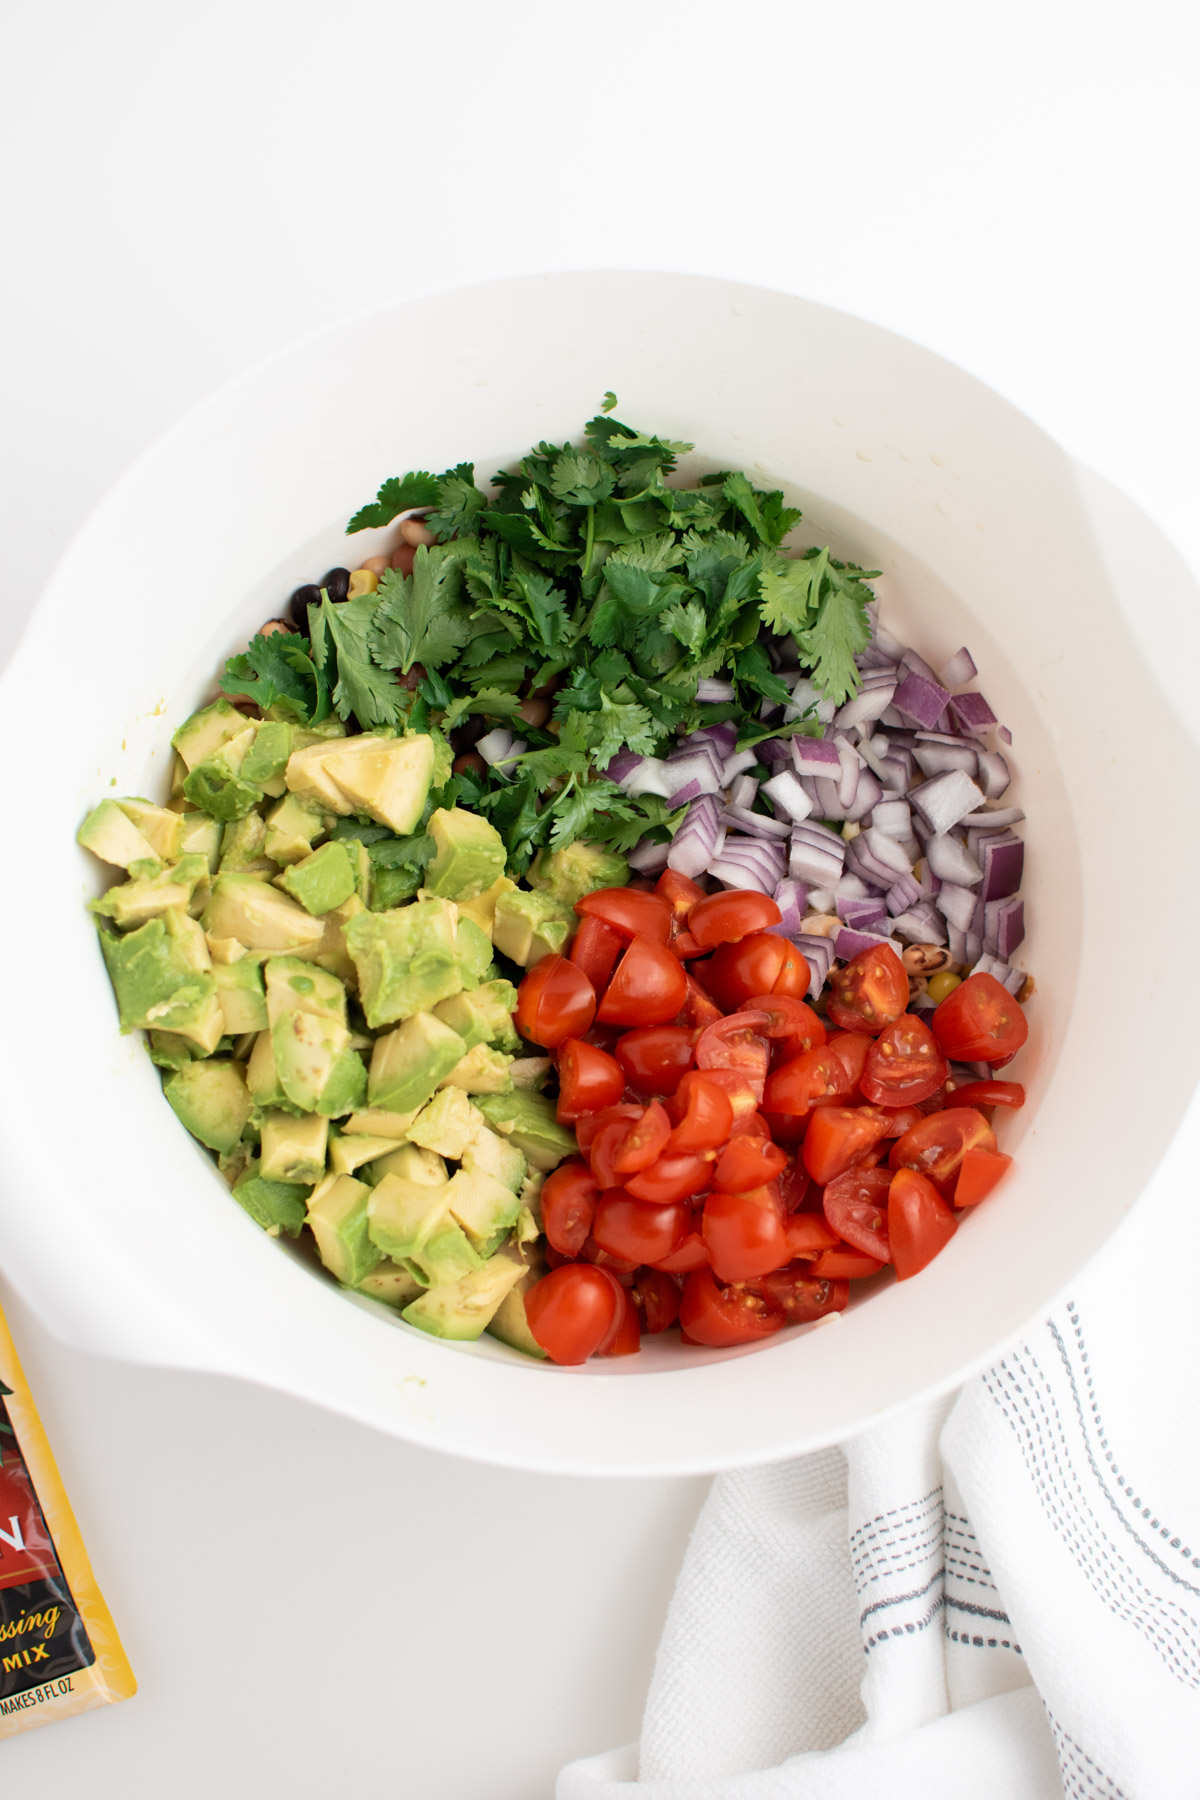 Chopped avocado, tomatoes, red onion and cilantro in a white mixing bowl.